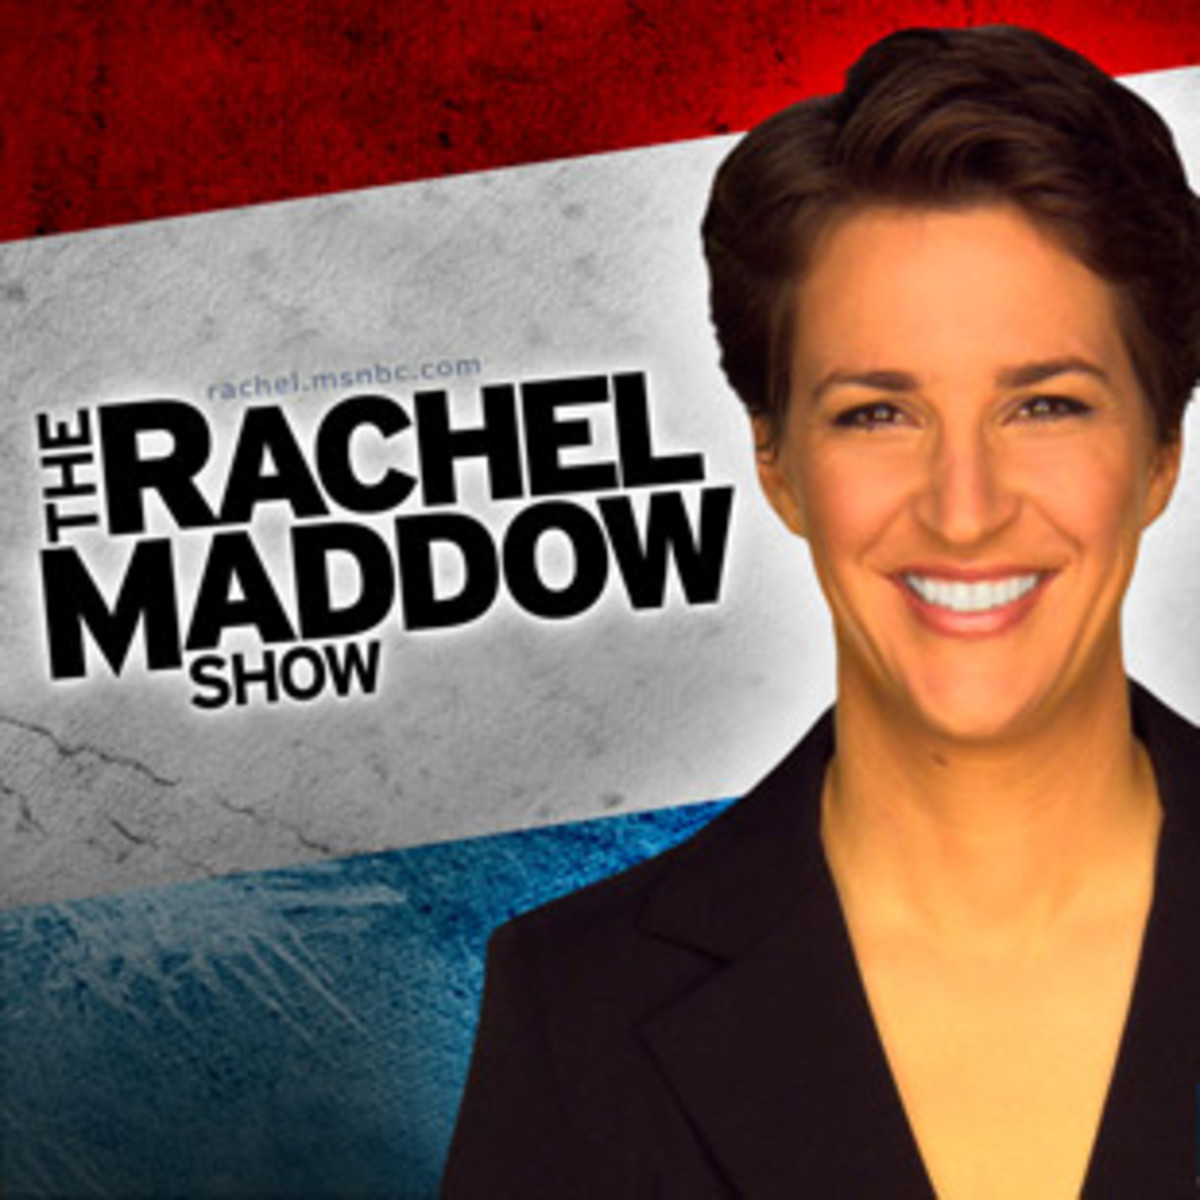 rachel-maddow-interesting-things-about-the-political-host